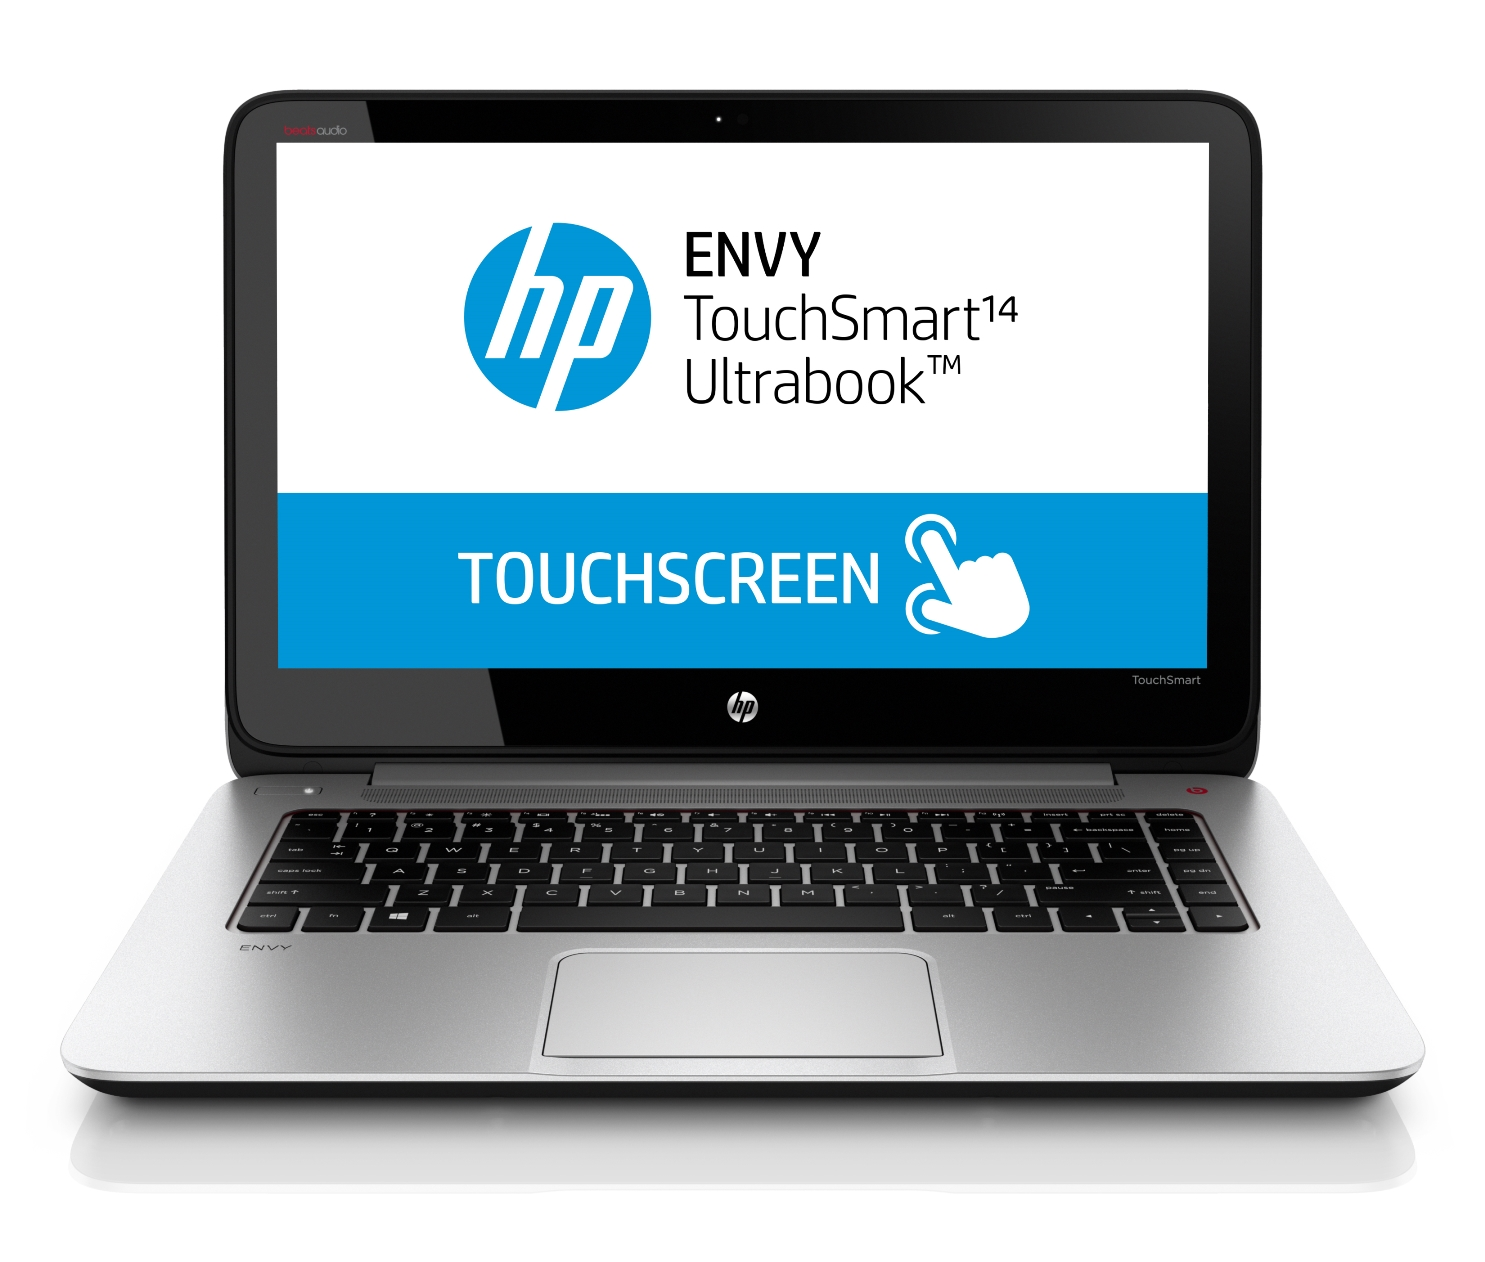 HP ENVY TouchSmart 14 Review